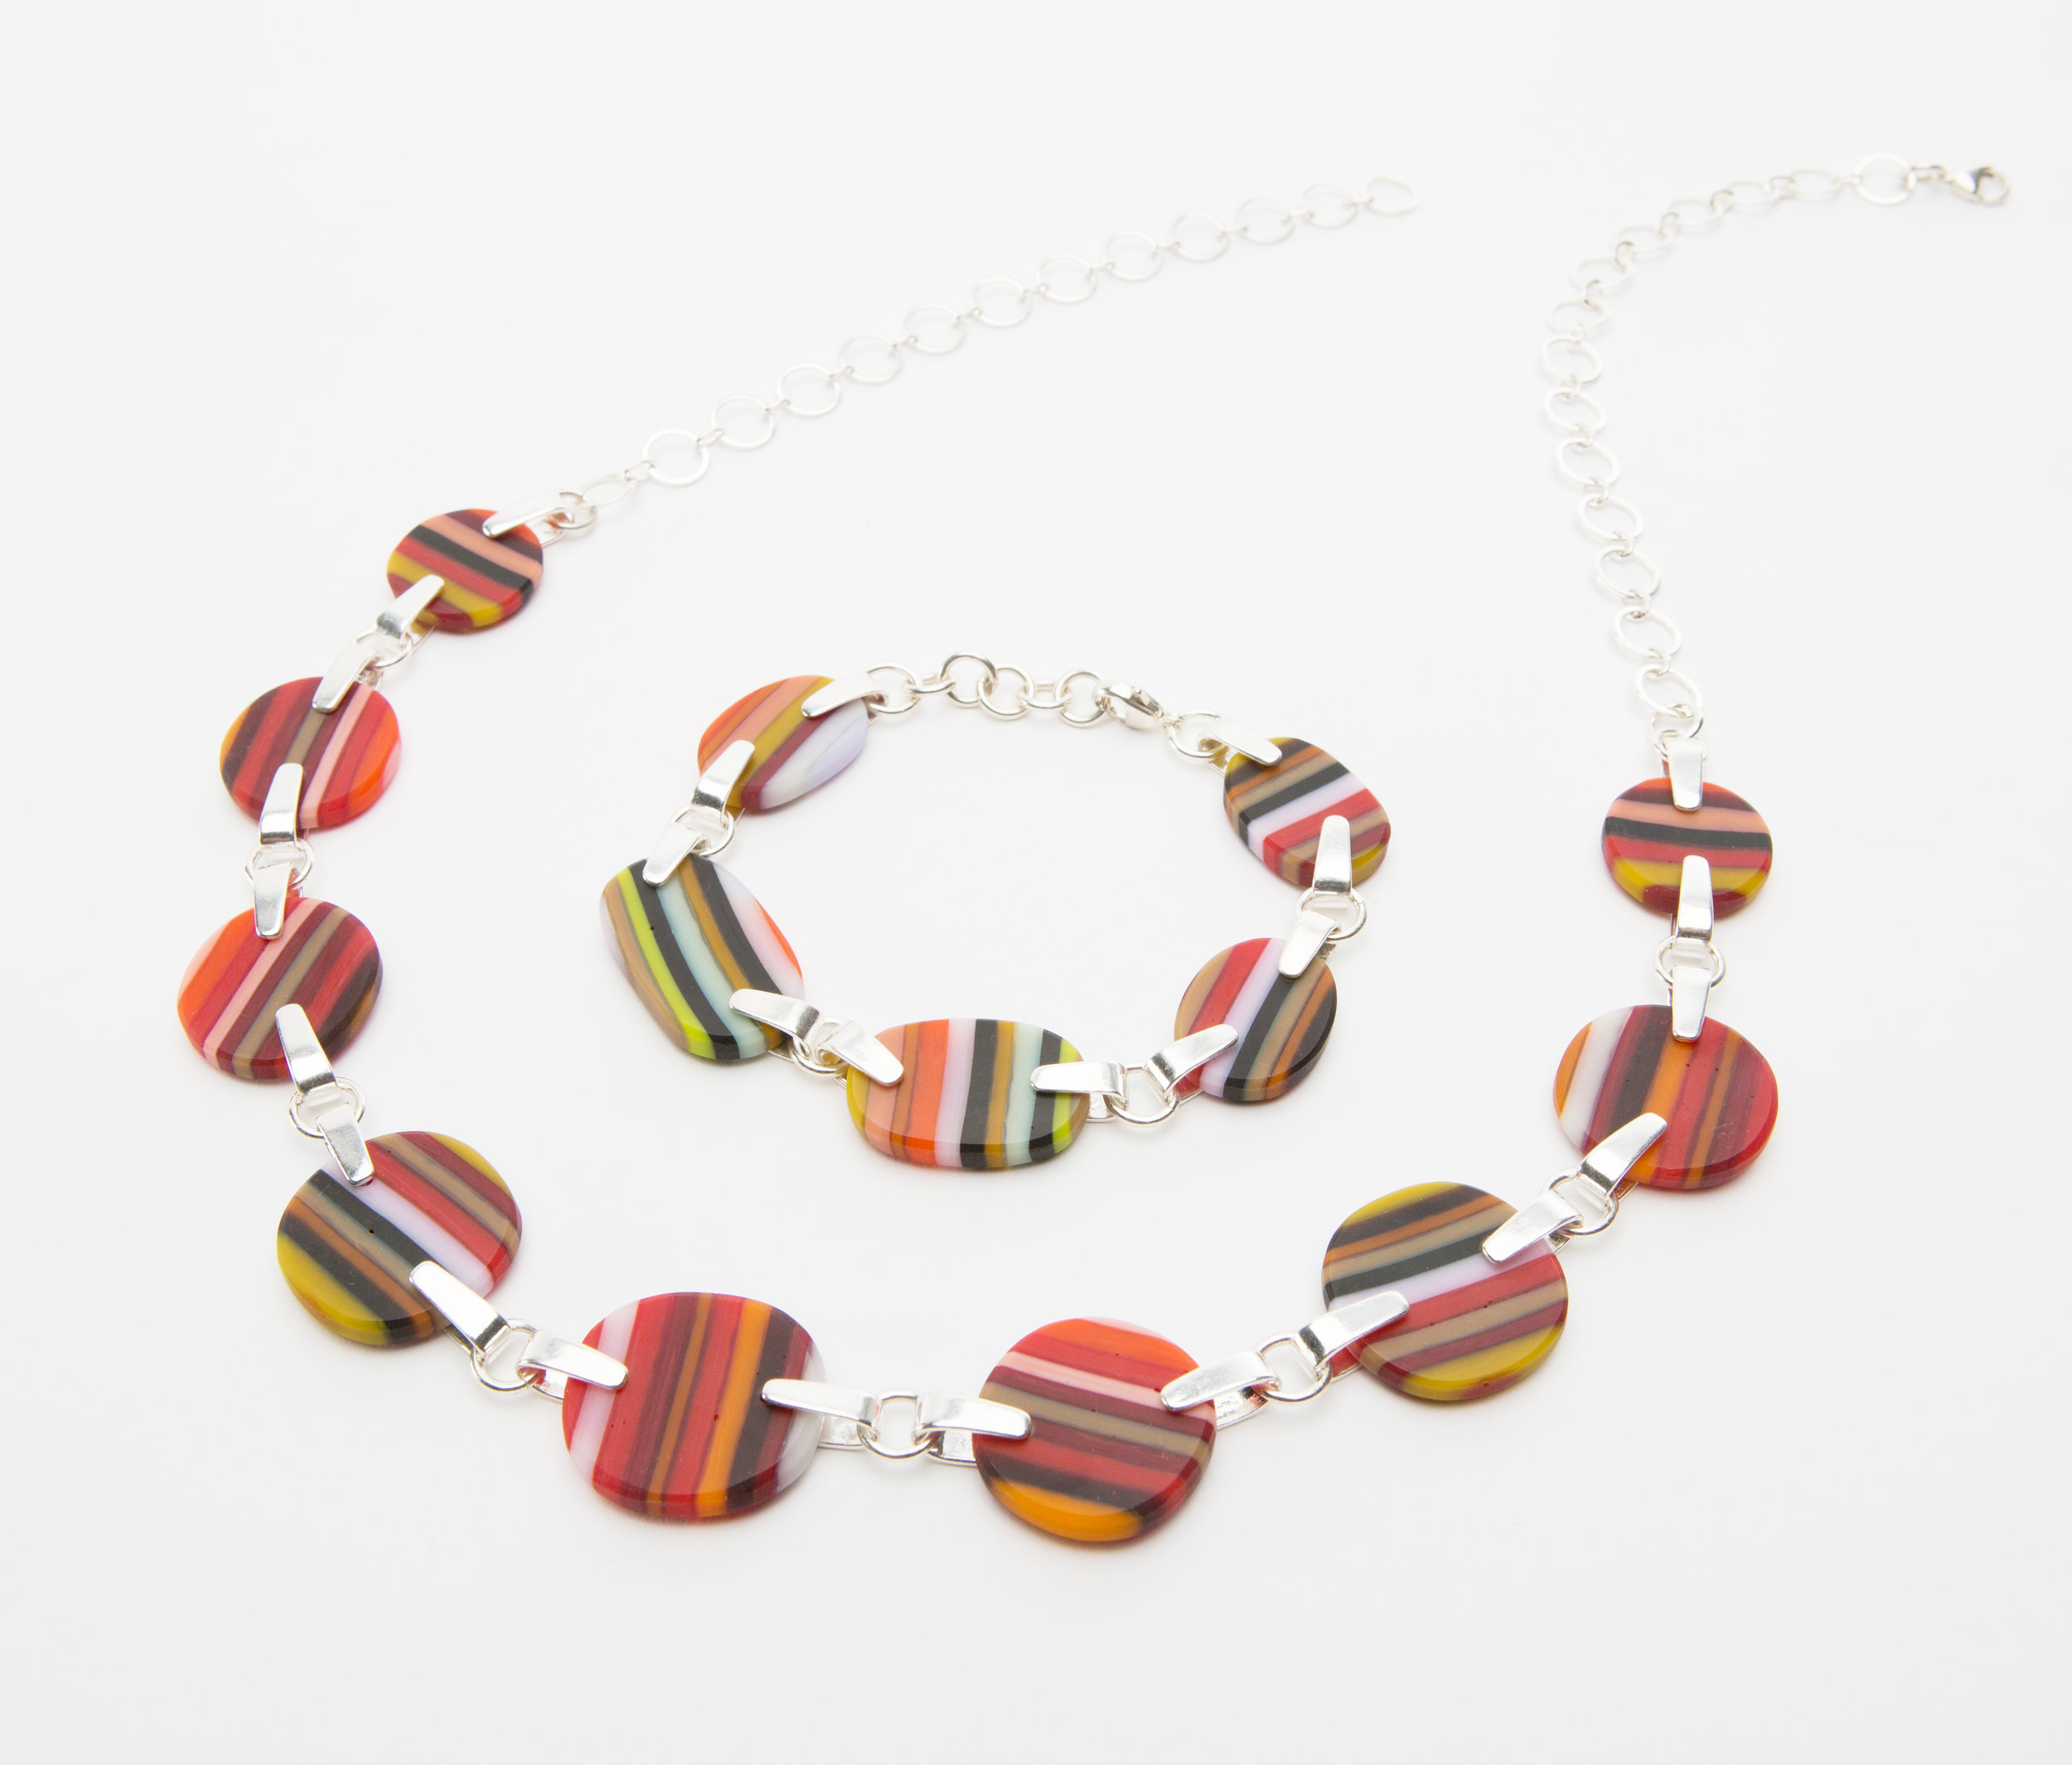 Carved Stripes, necklace and bracelet, 2016